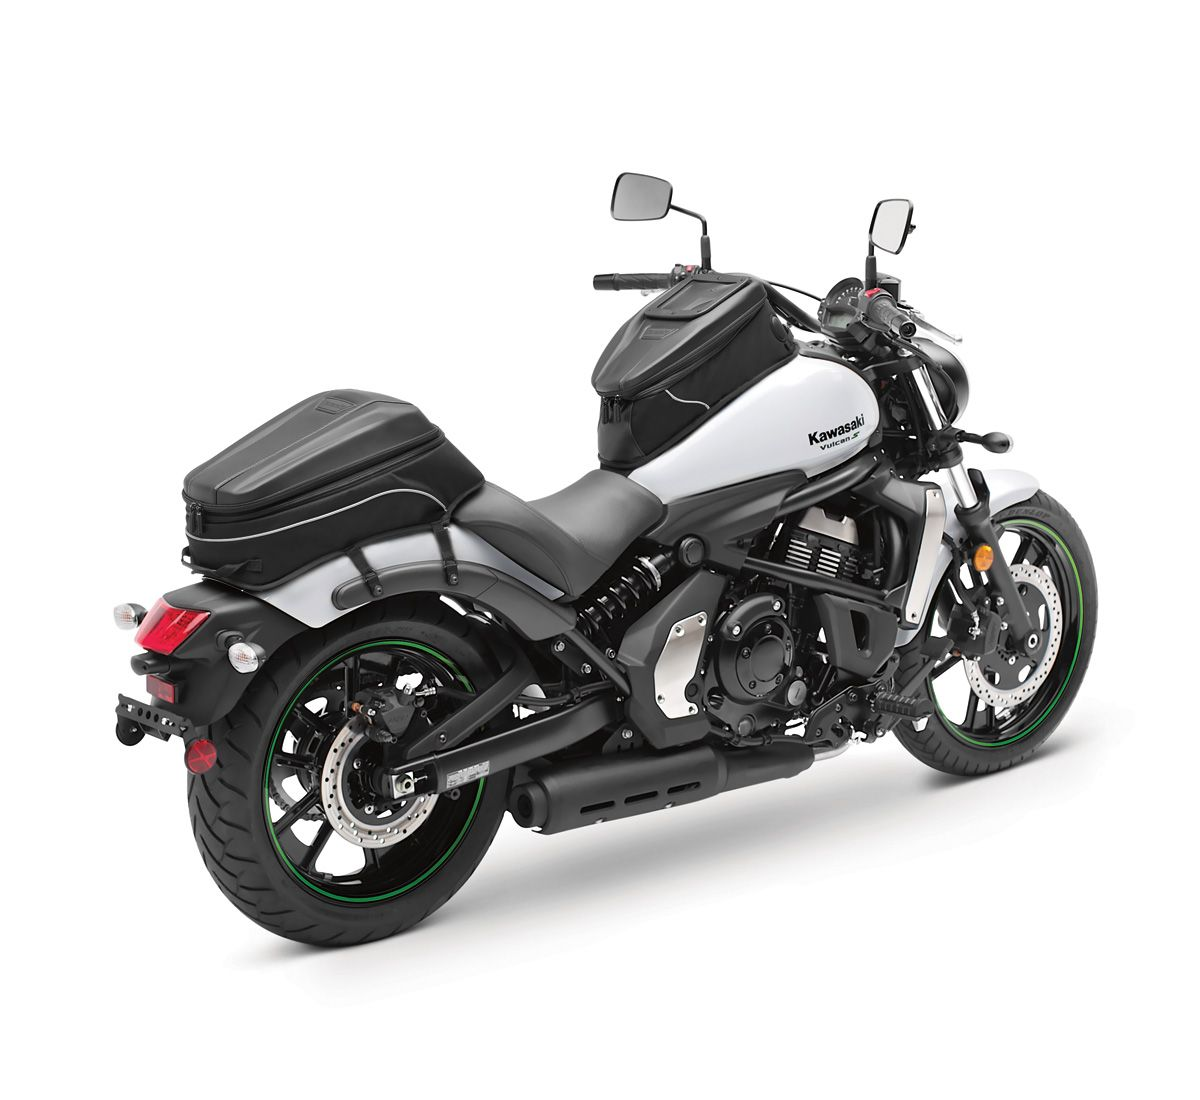 license plate frame kawasaki vulcan forum vulcan. Black Bedroom Furniture Sets. Home Design Ideas